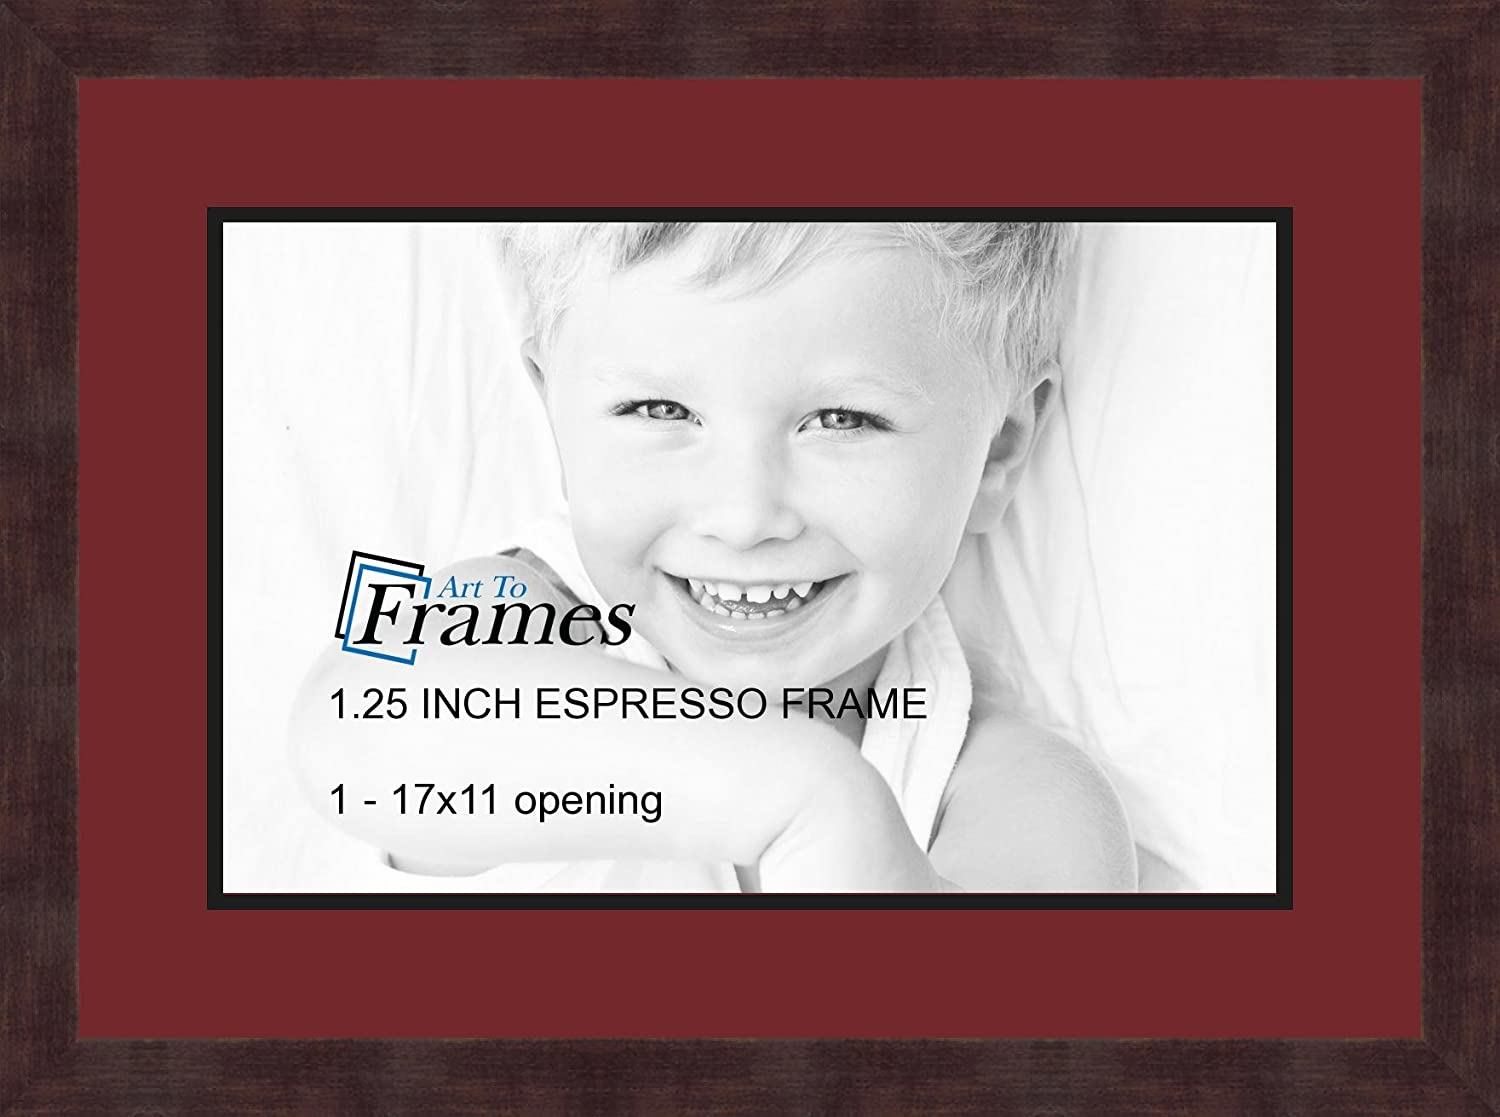 Art to Frames Double-Multimat-727-594/89-FRBW26061 Collage Frame Photo Mat Double Mat with 1 - 11x17 Openings and Espresso frame